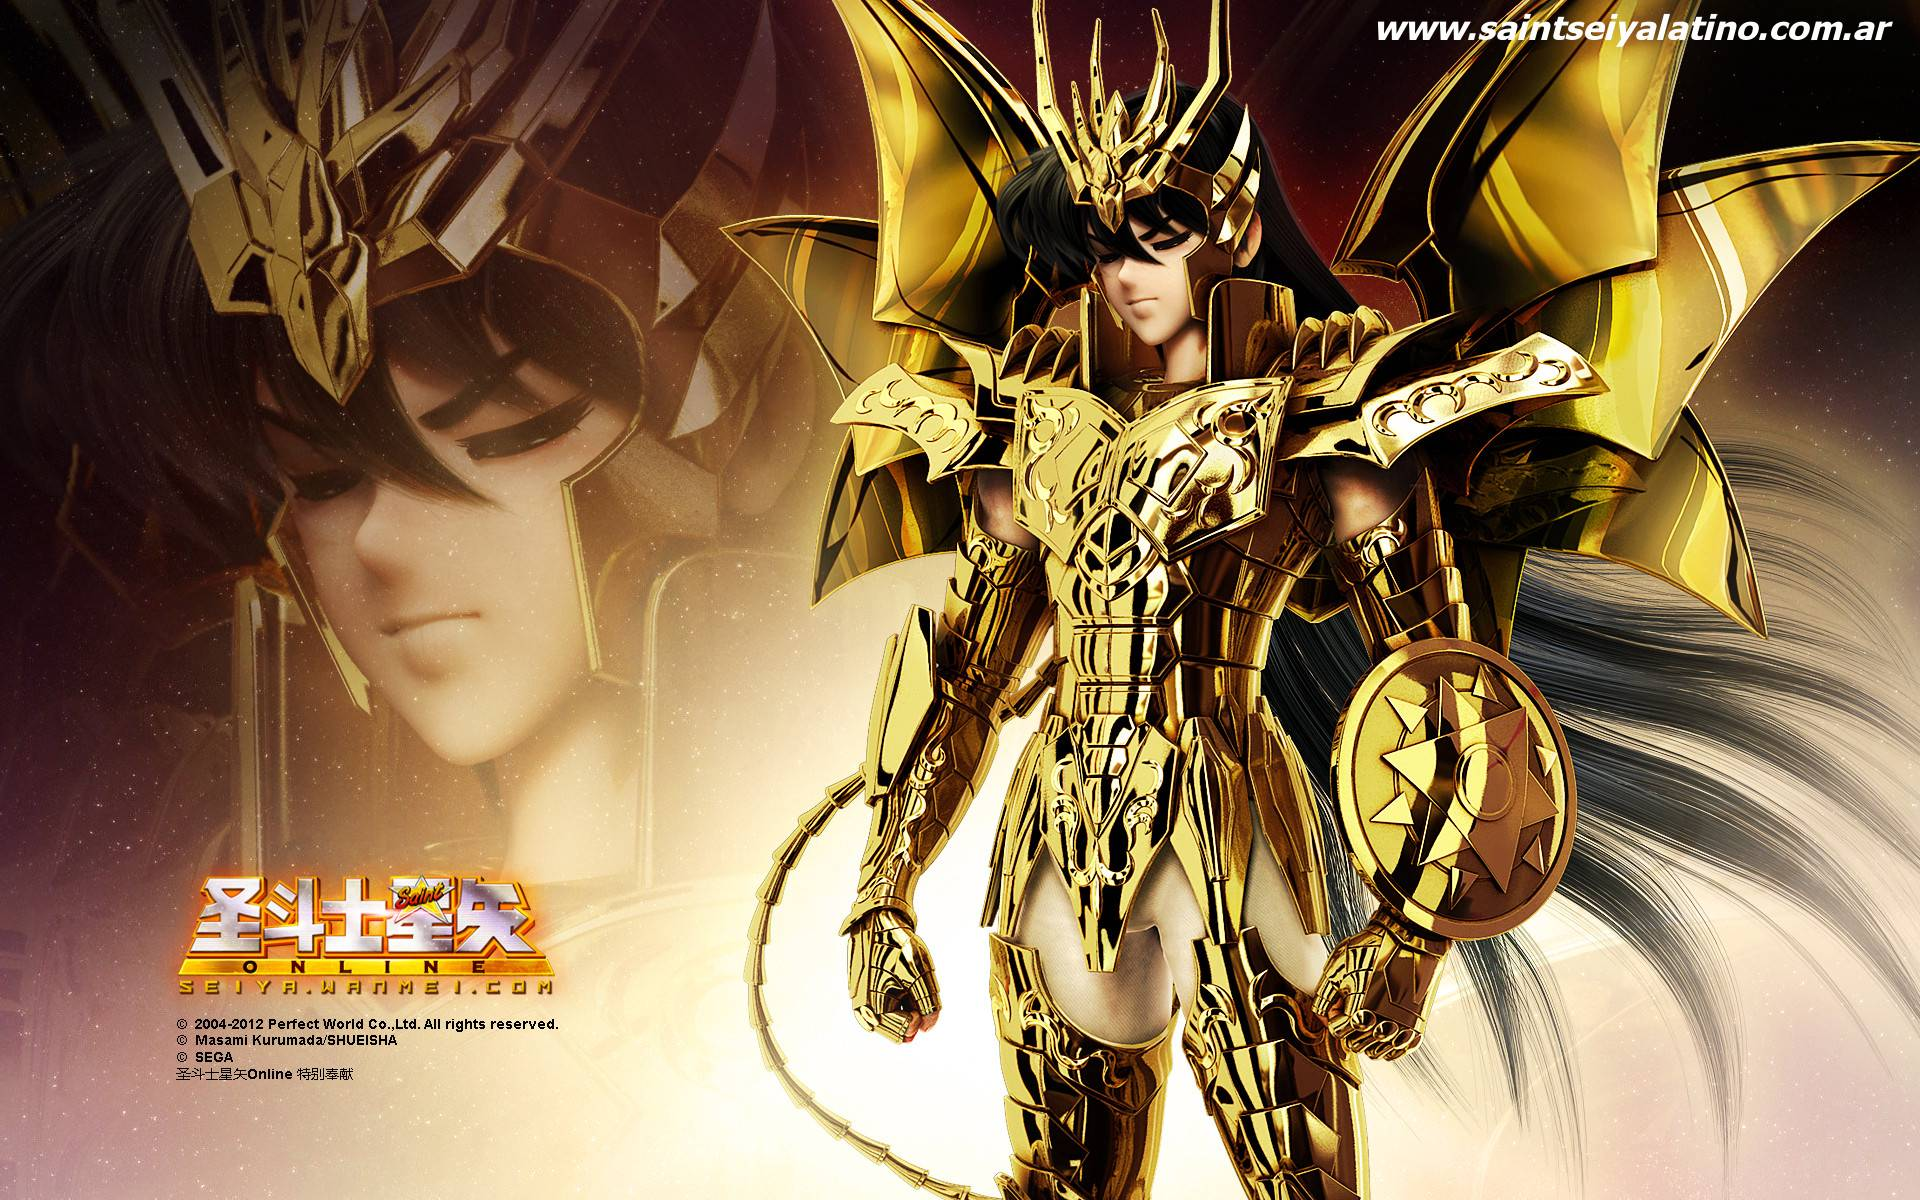 Saint Seiya Wallpapers - Wallpaper Cave